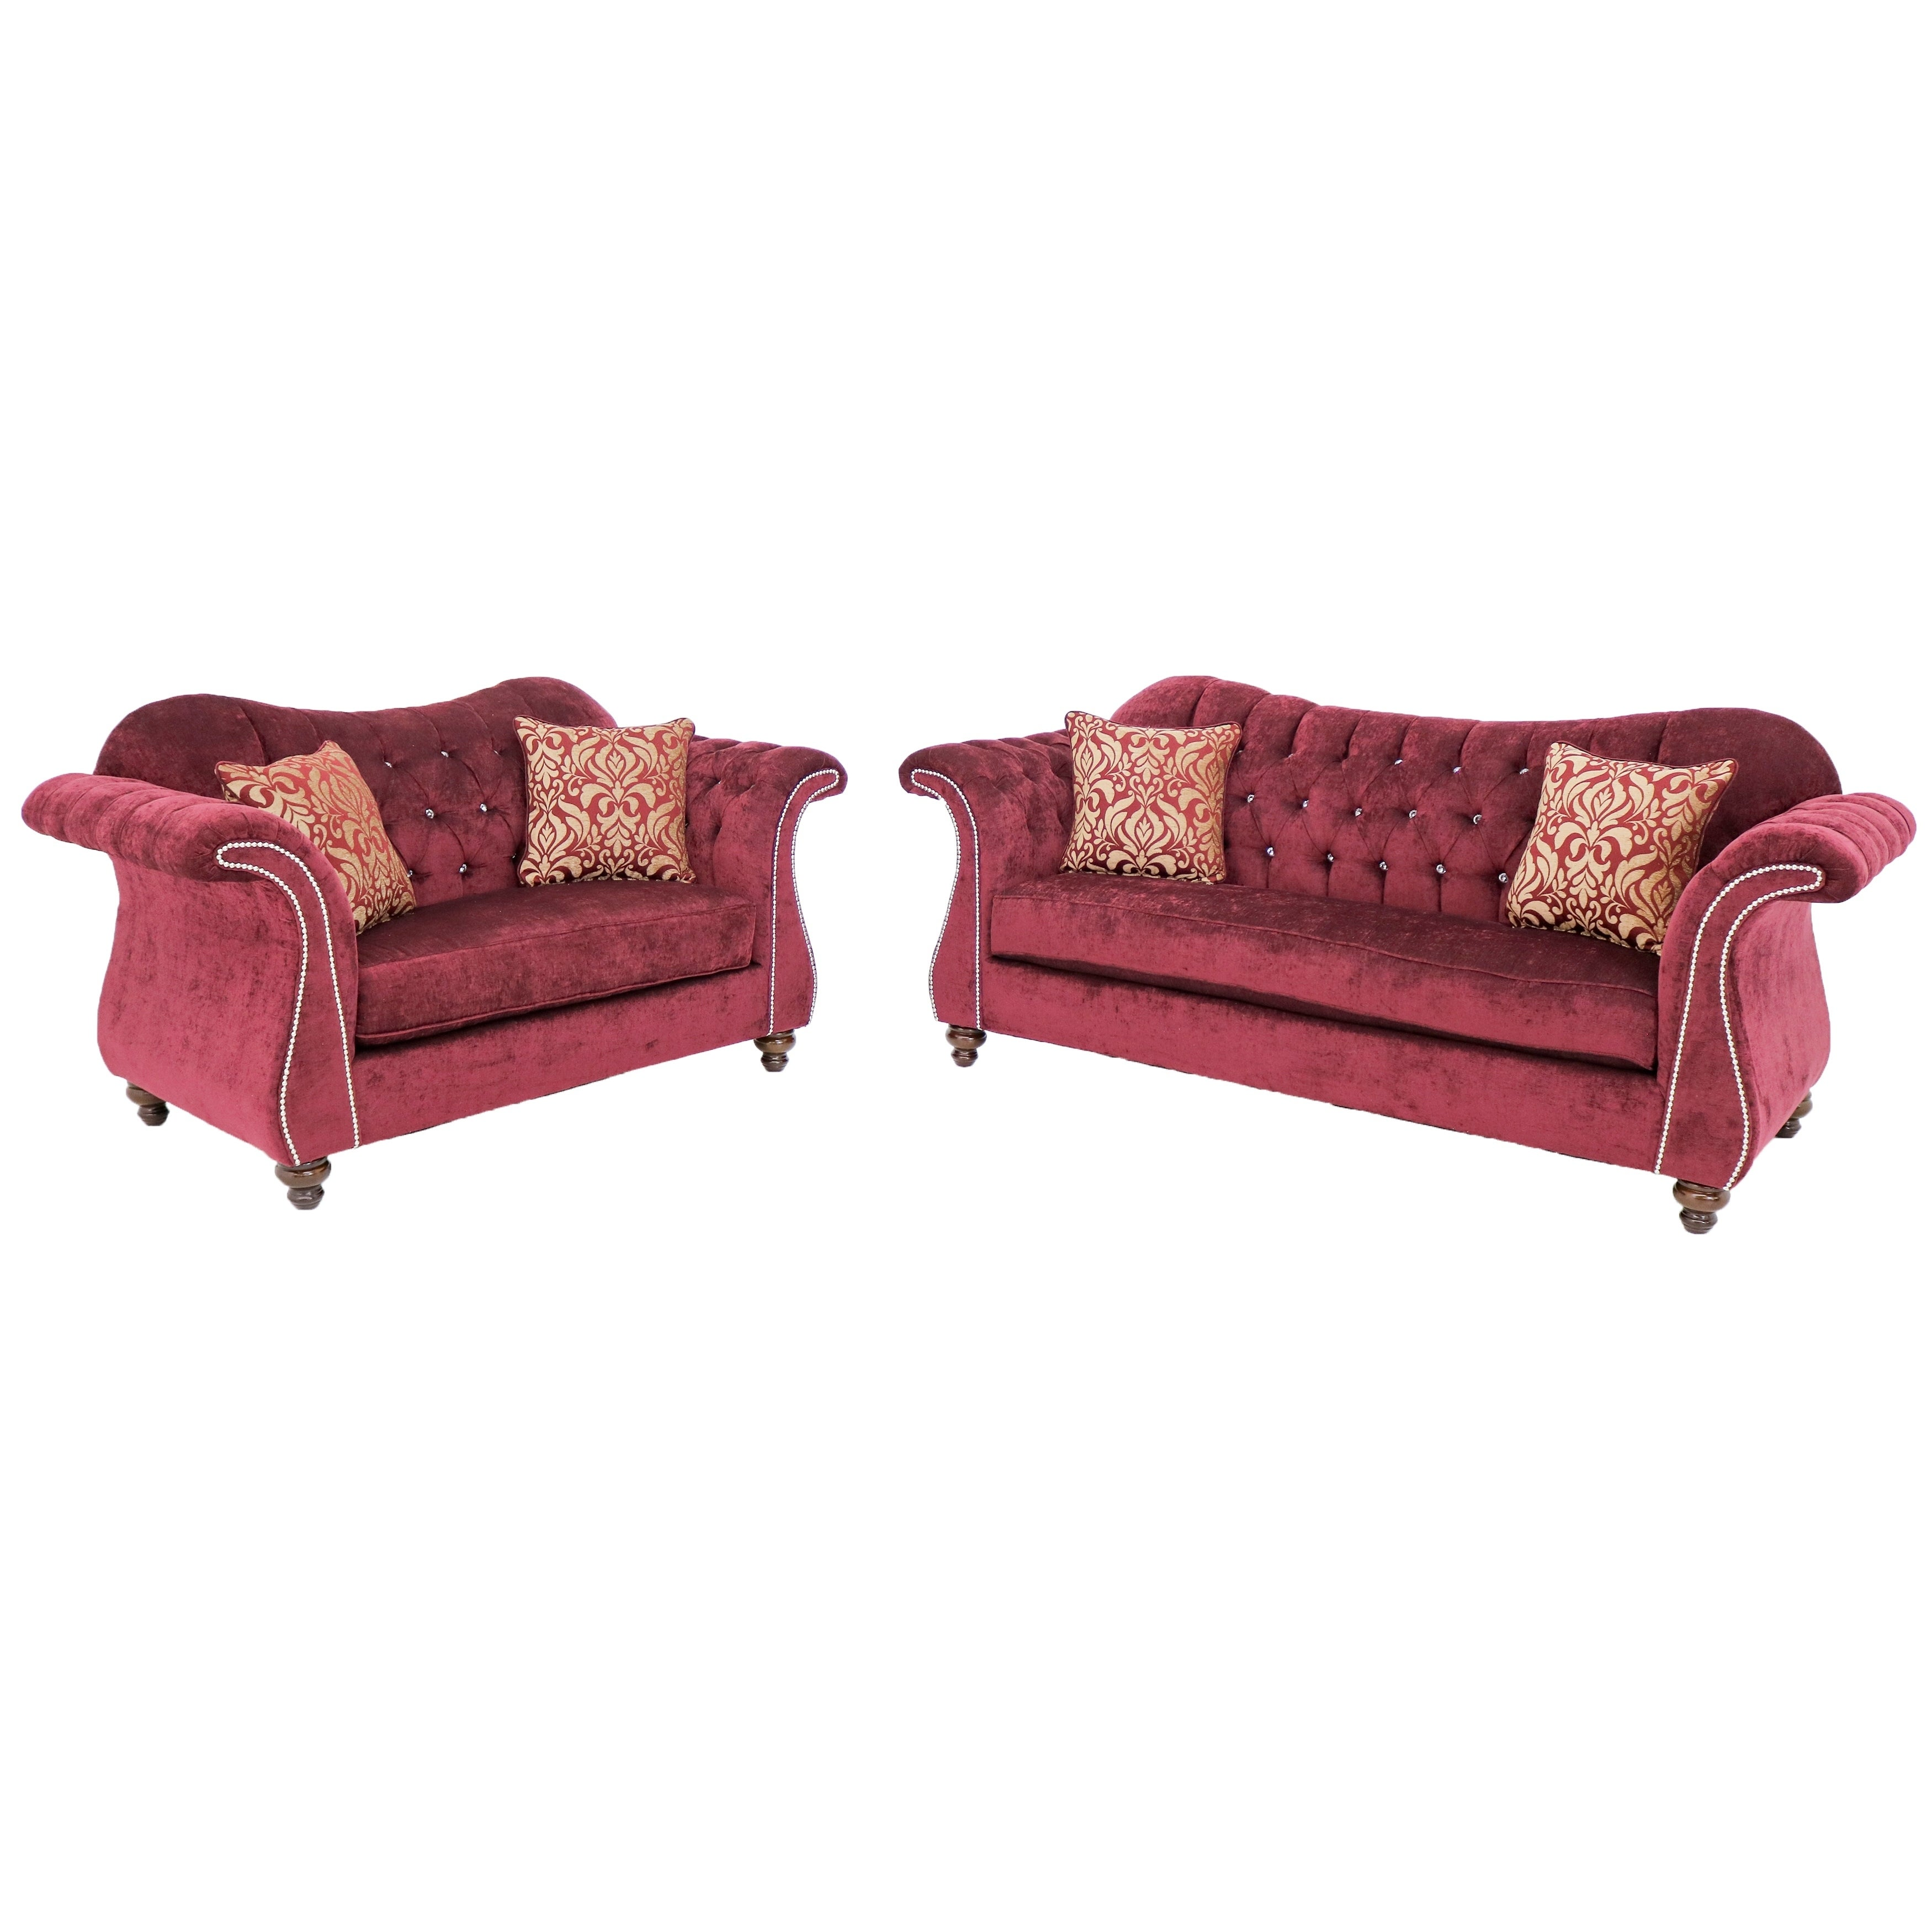 New York Red Upholstered Tufted Crystal Living Room Sofa Set - Free ...